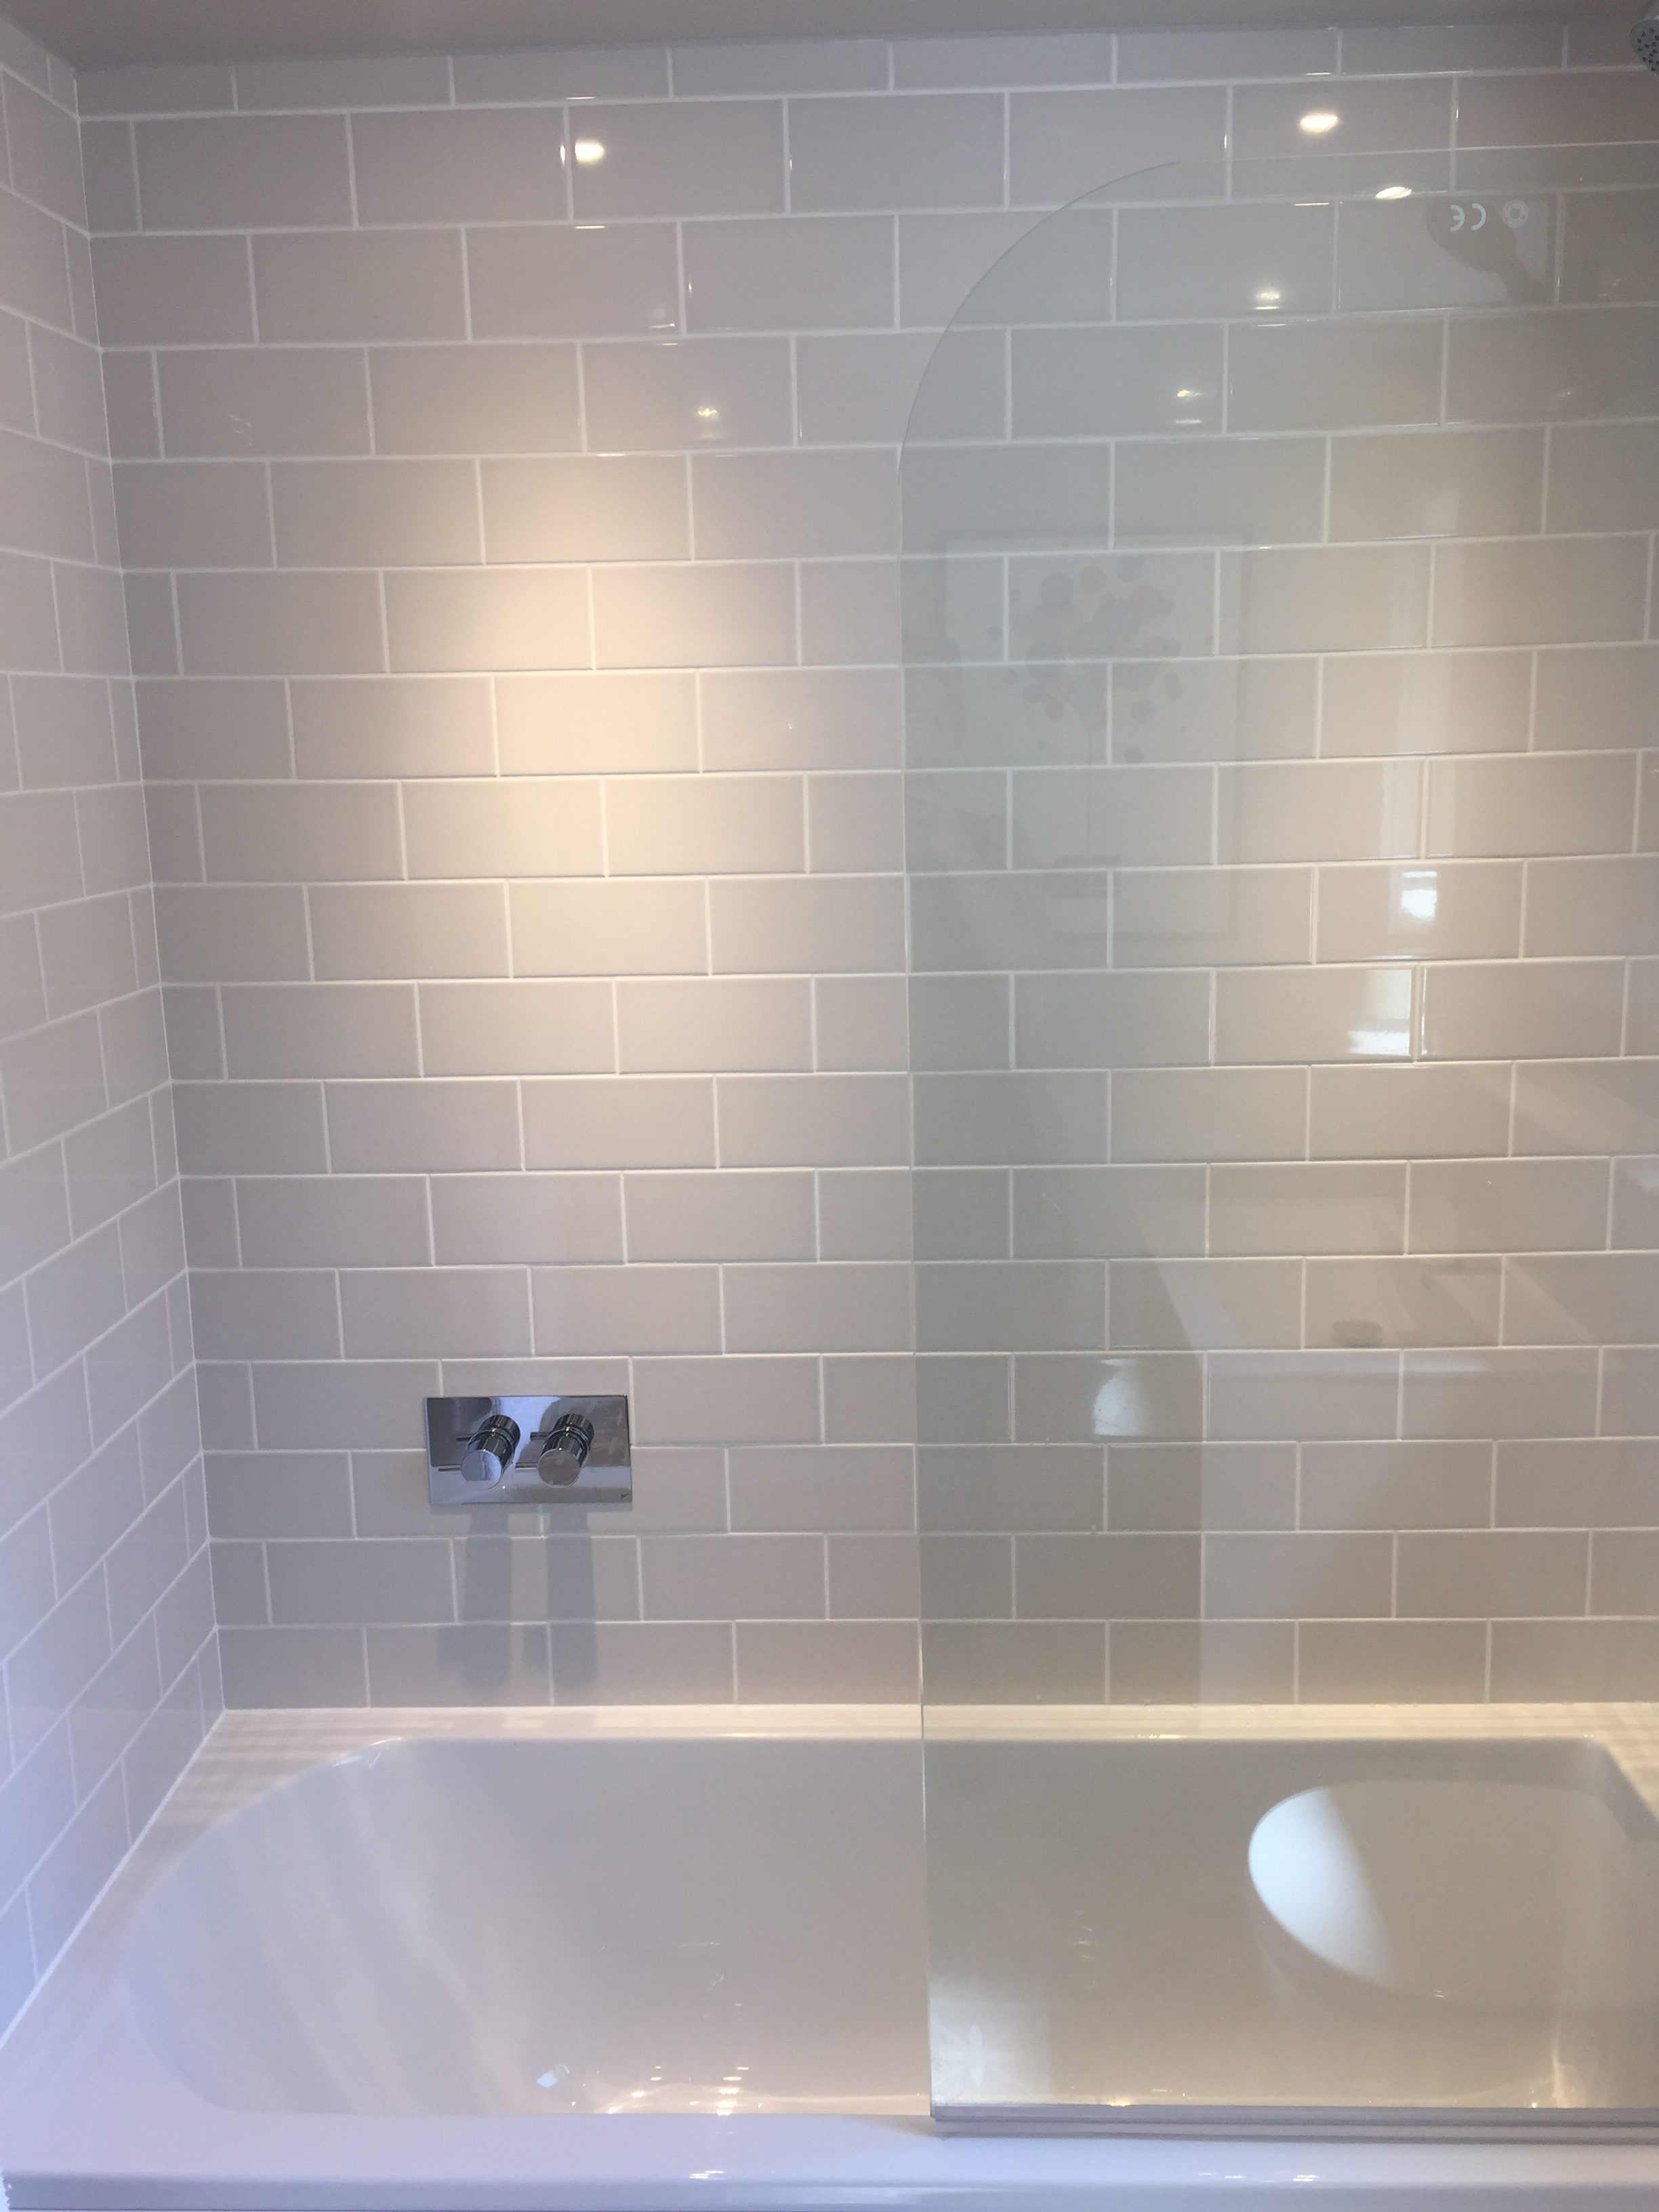 Bathroom renovation completed kate sadler i selected soft grey patterned floor tiles by laura ashley to bring a bit of fun and interest to the floor i didnt choose gloss for the floor as i wanted dailygadgetfo Choice Image